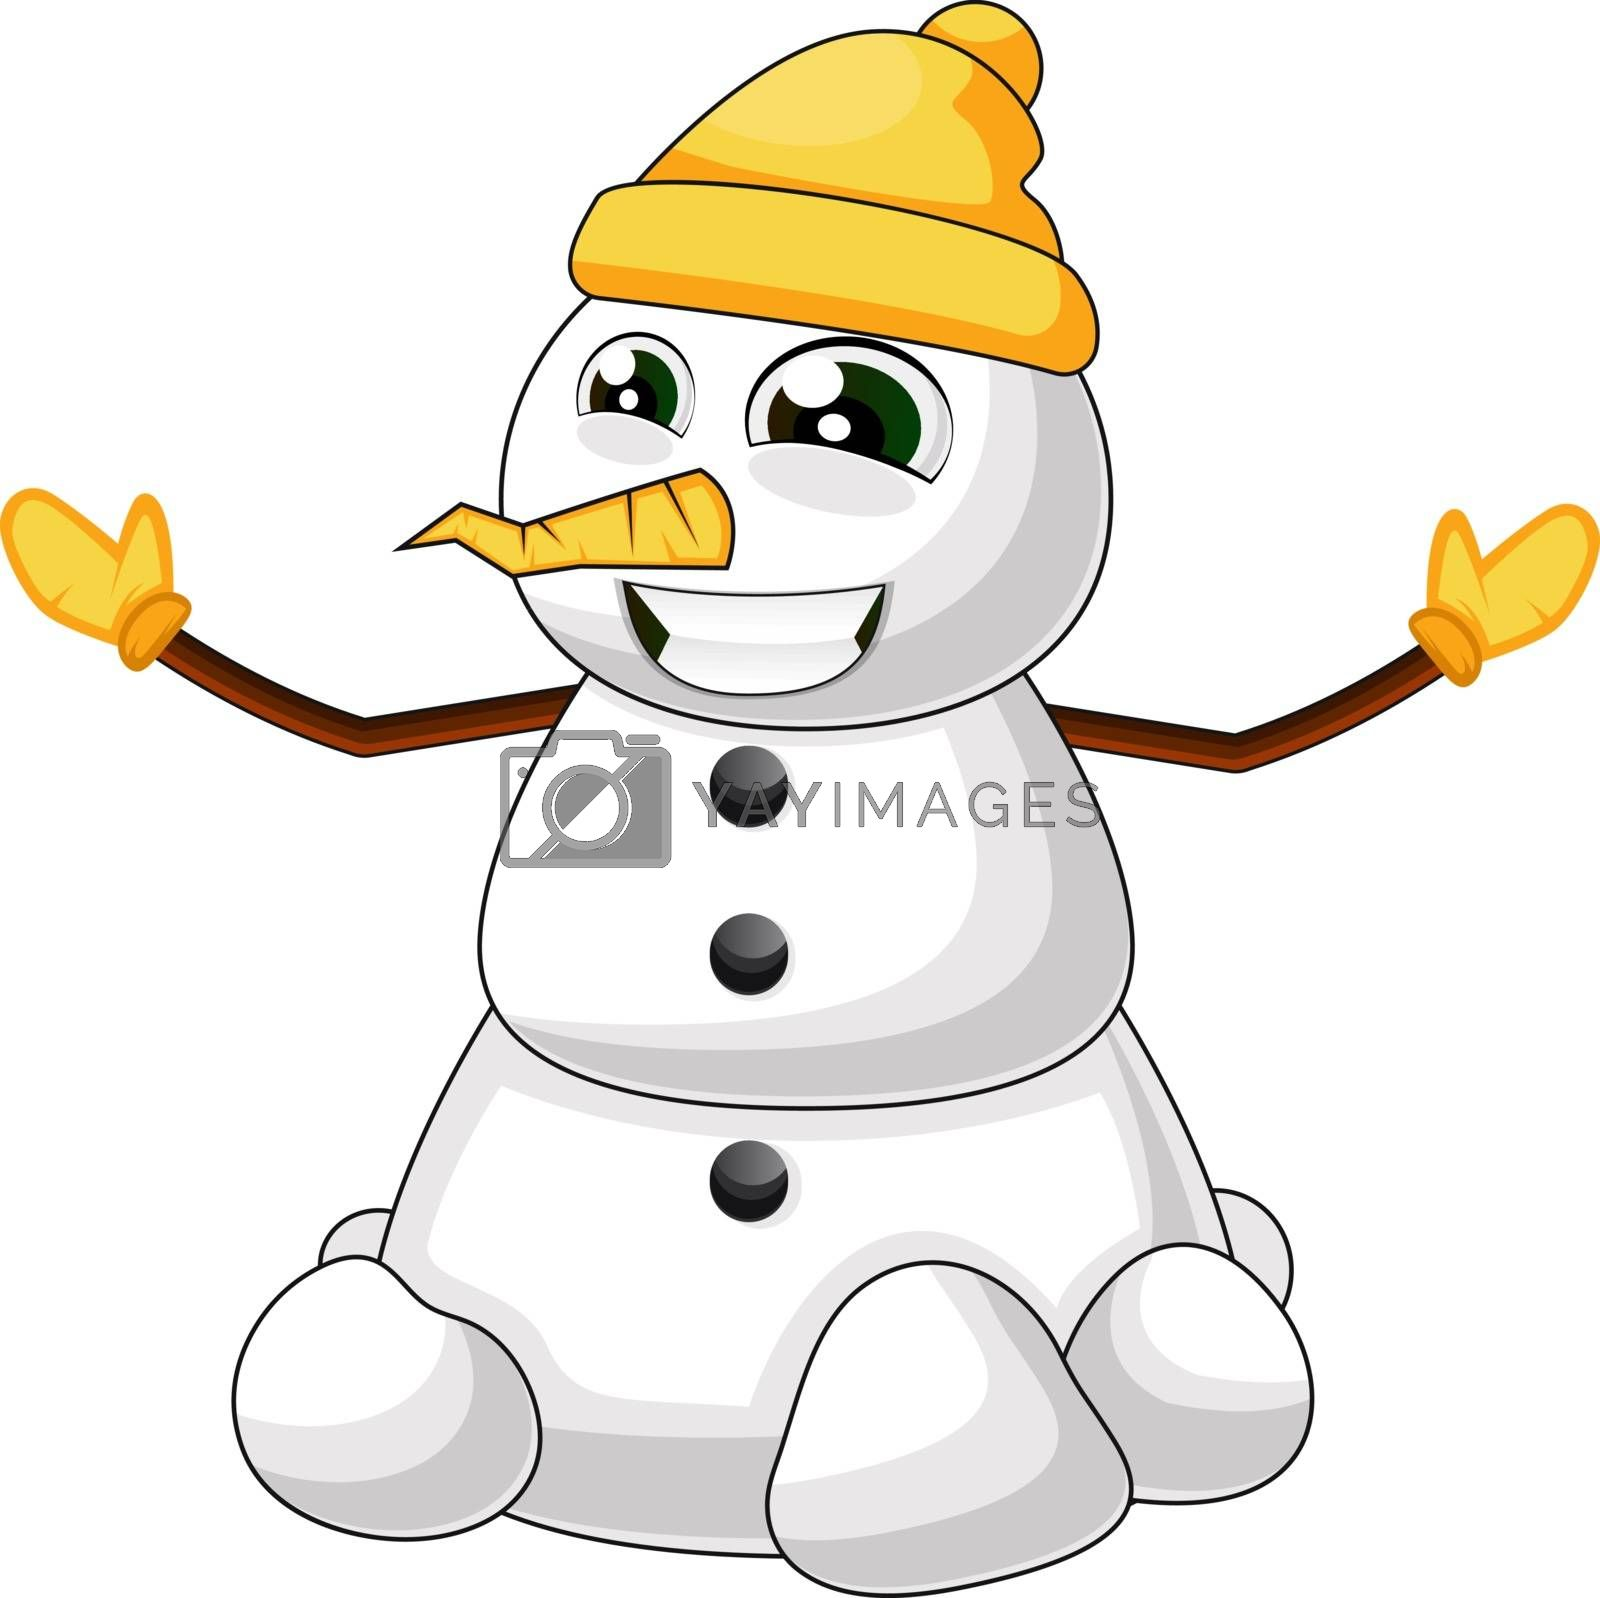 Royalty free image of Cute snowman illustration vector on white background by Morphart